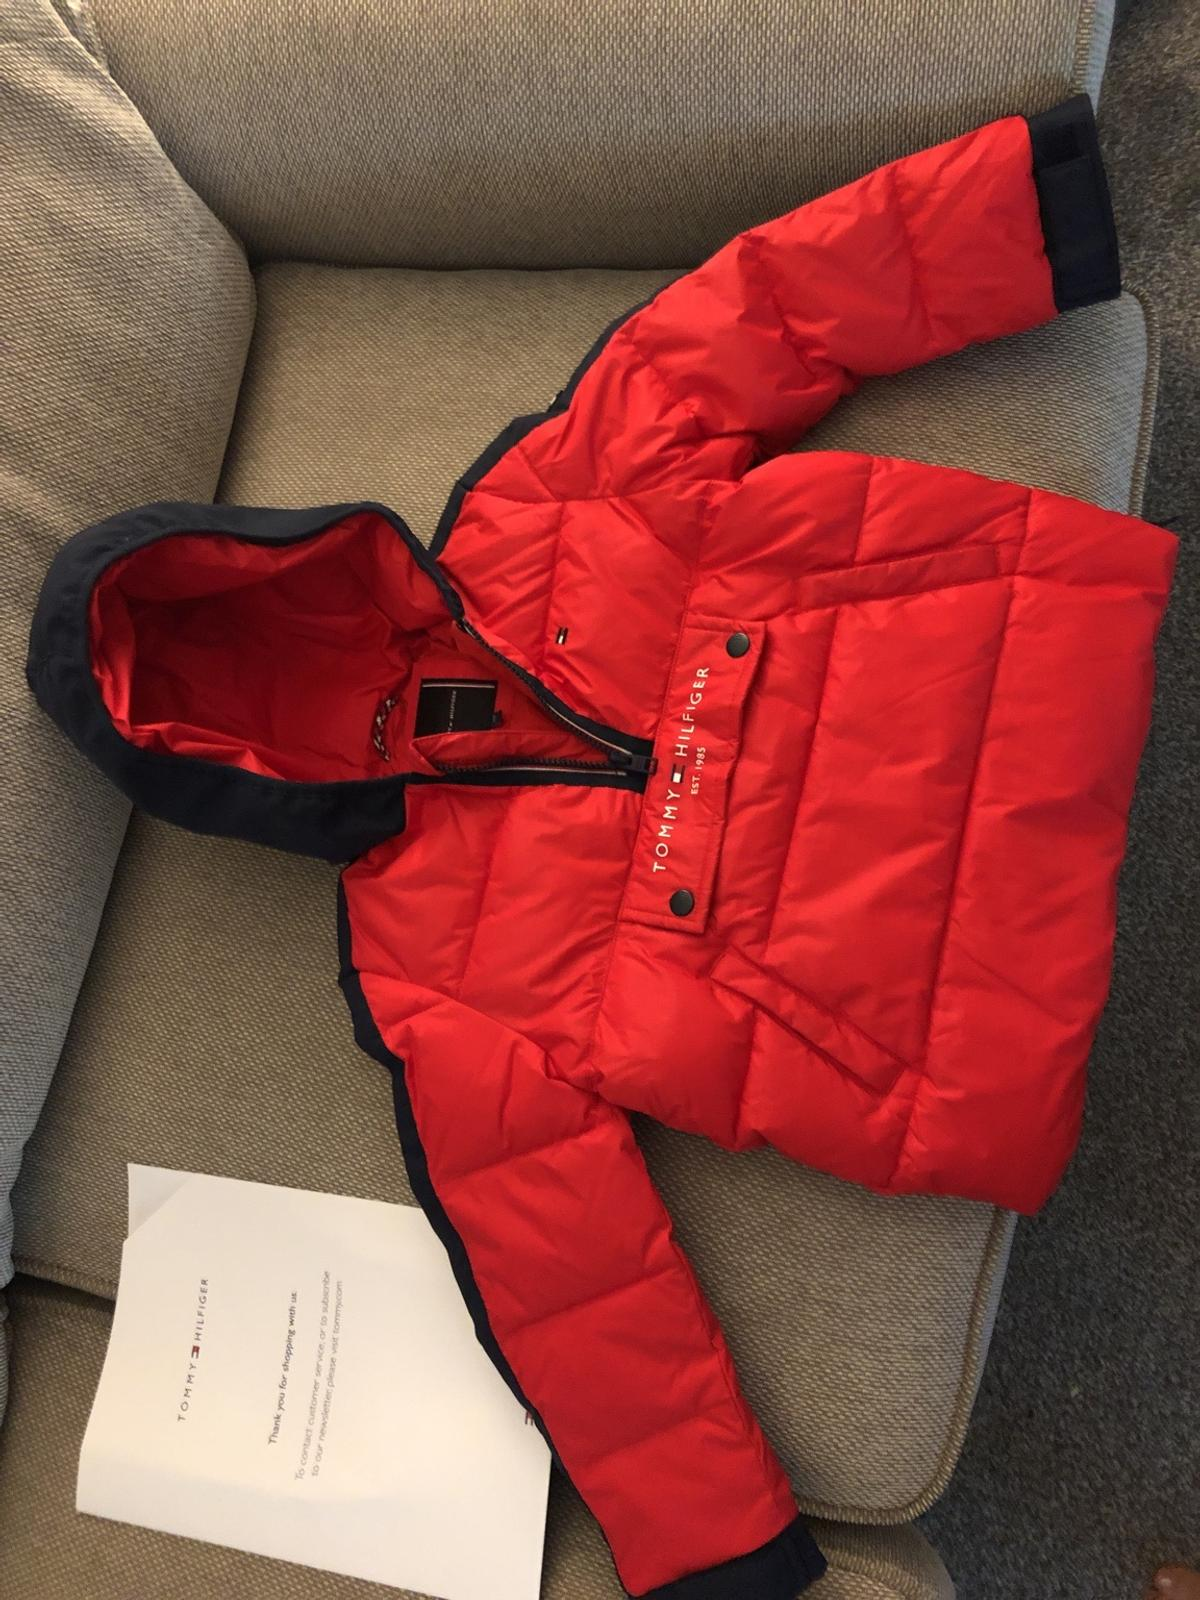 Aged 6. Brand new brought for £110. Tried on once my boy dislikes it as its an over the head coat. Never worn from smoke/pet free house